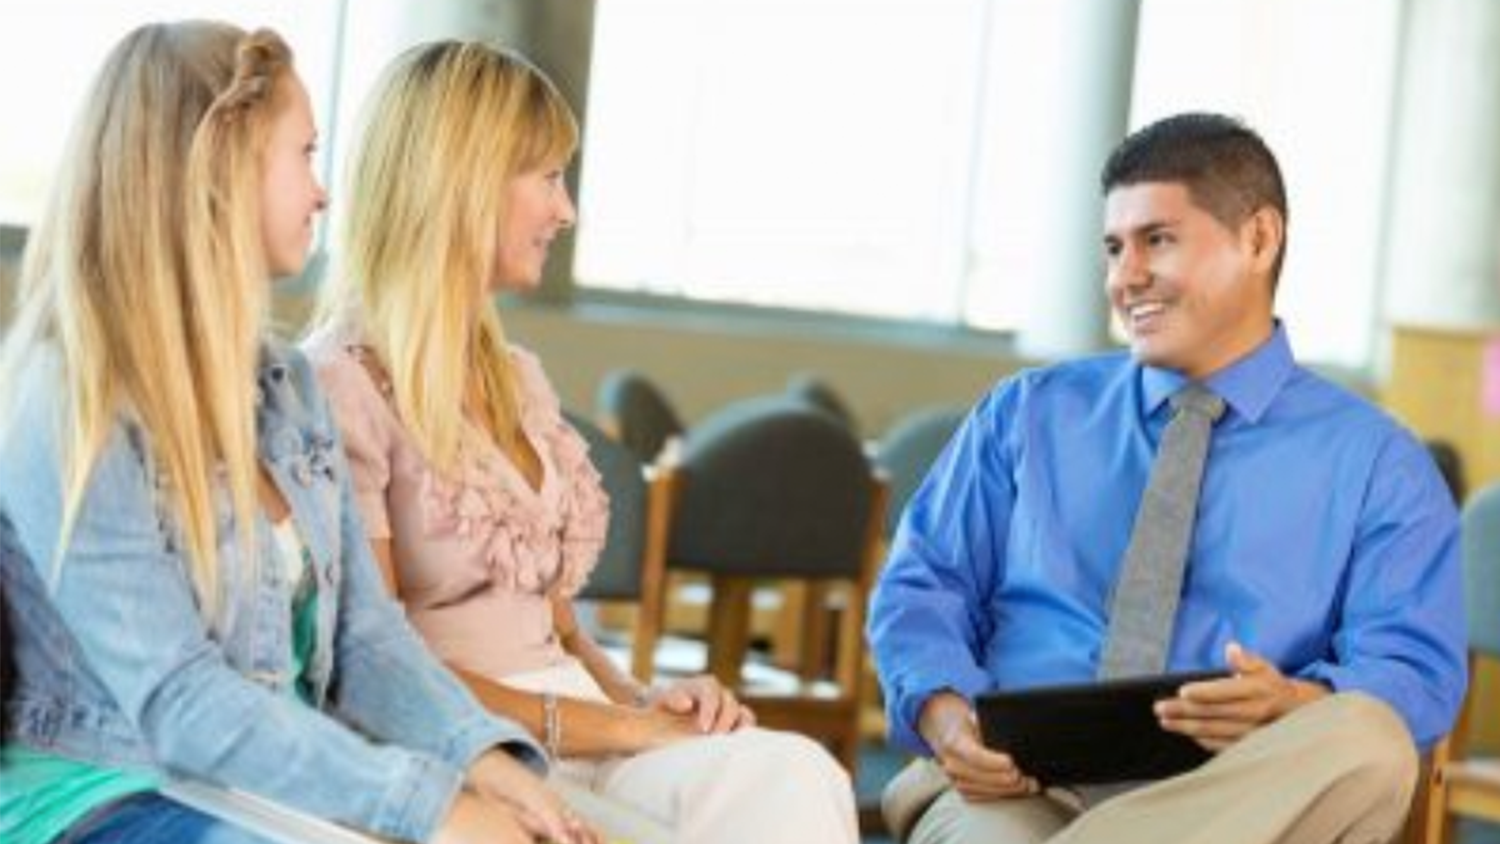 Two students in a counseling session